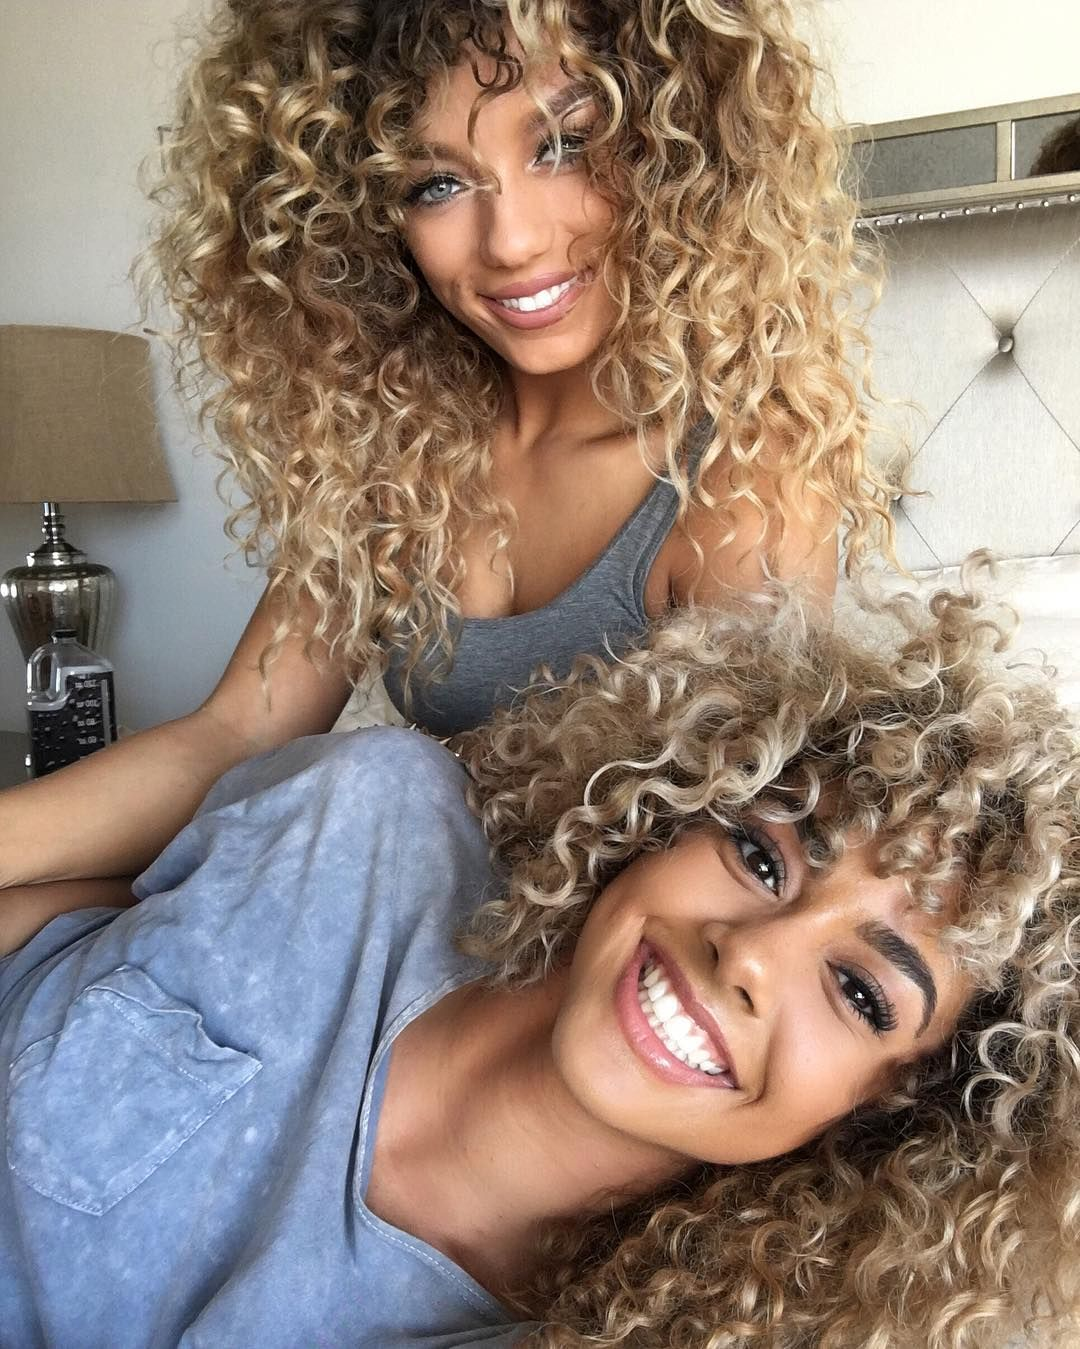 Paparazzi Jena Frumes nude (83 foto and video), Topless, Cleavage, Selfie, swimsuit 2020